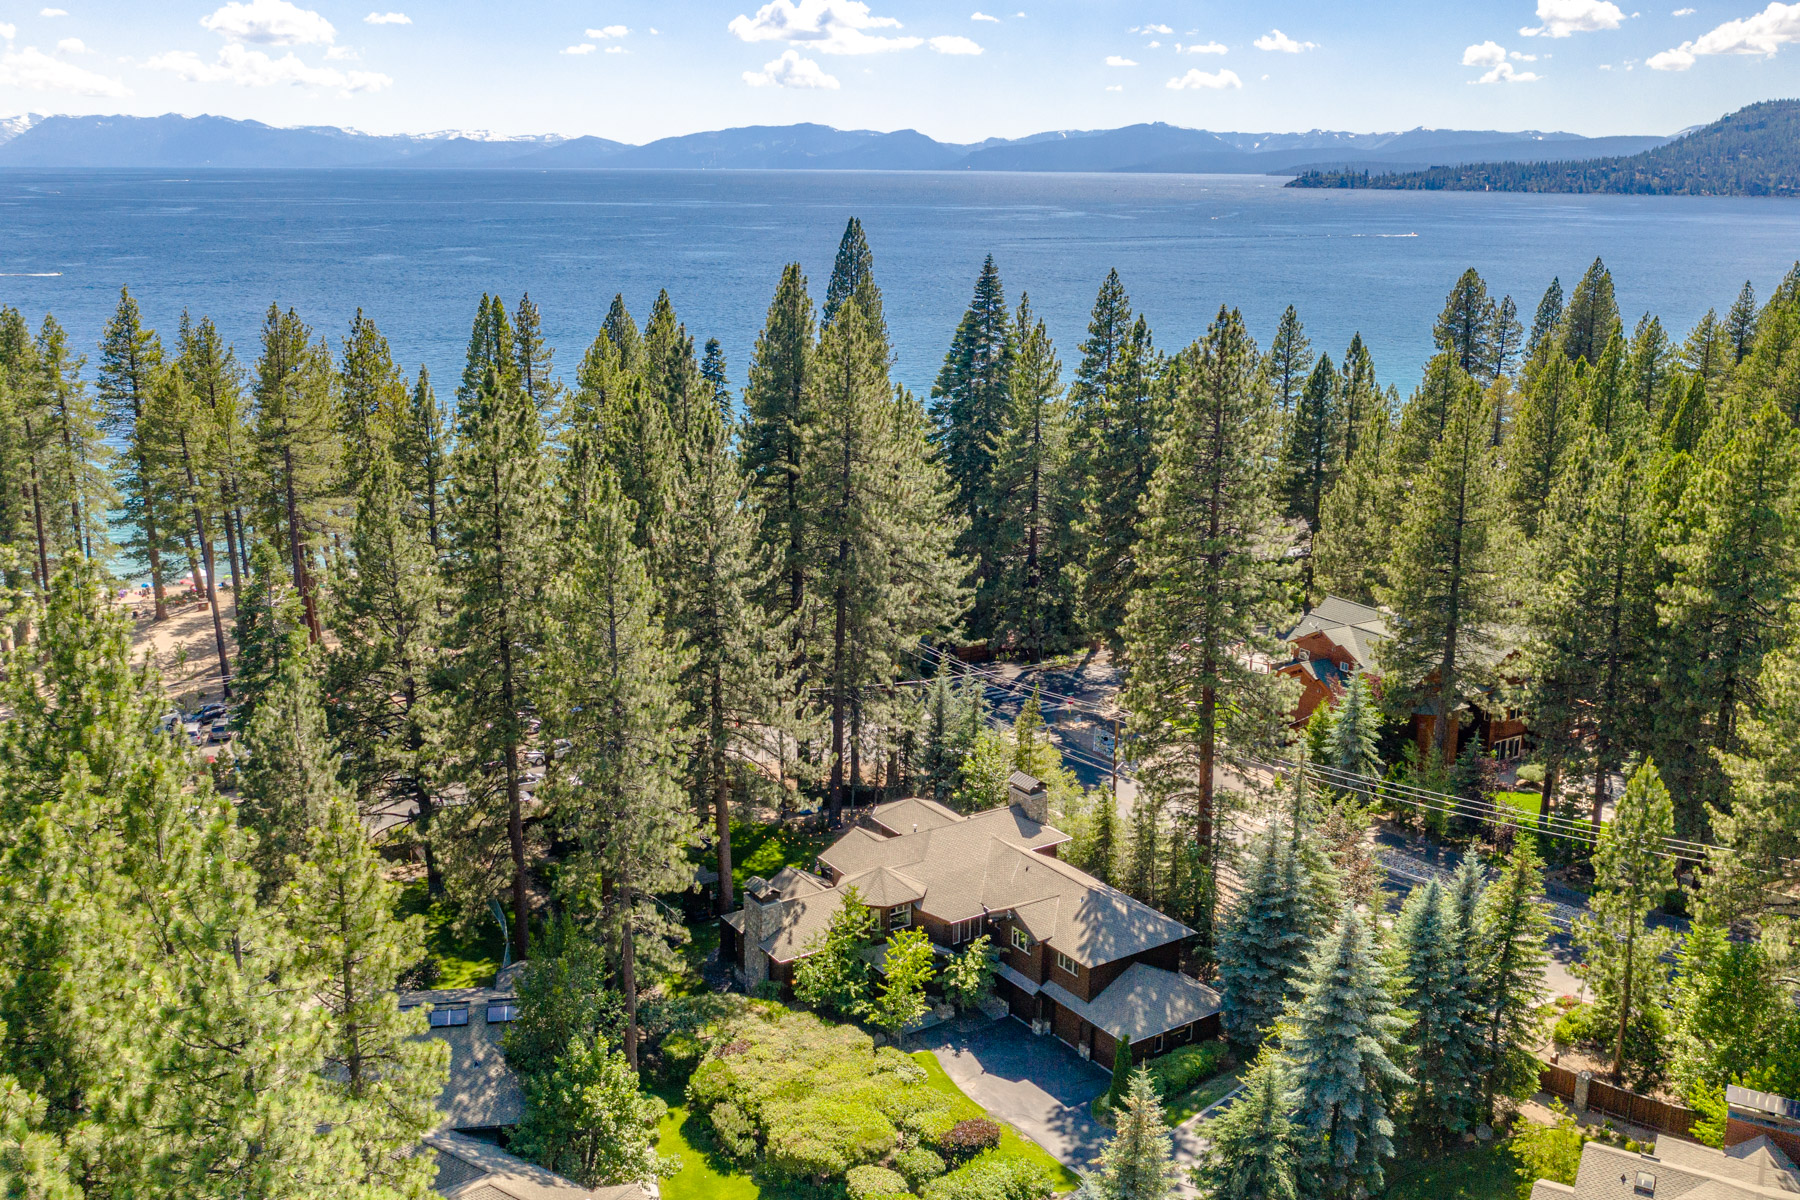 Additional photo for property listing at 948 Lakeshore View Ct, Incline Village, NV 948 Lakeshore View Court Incline Village, Nevada 89451 United States